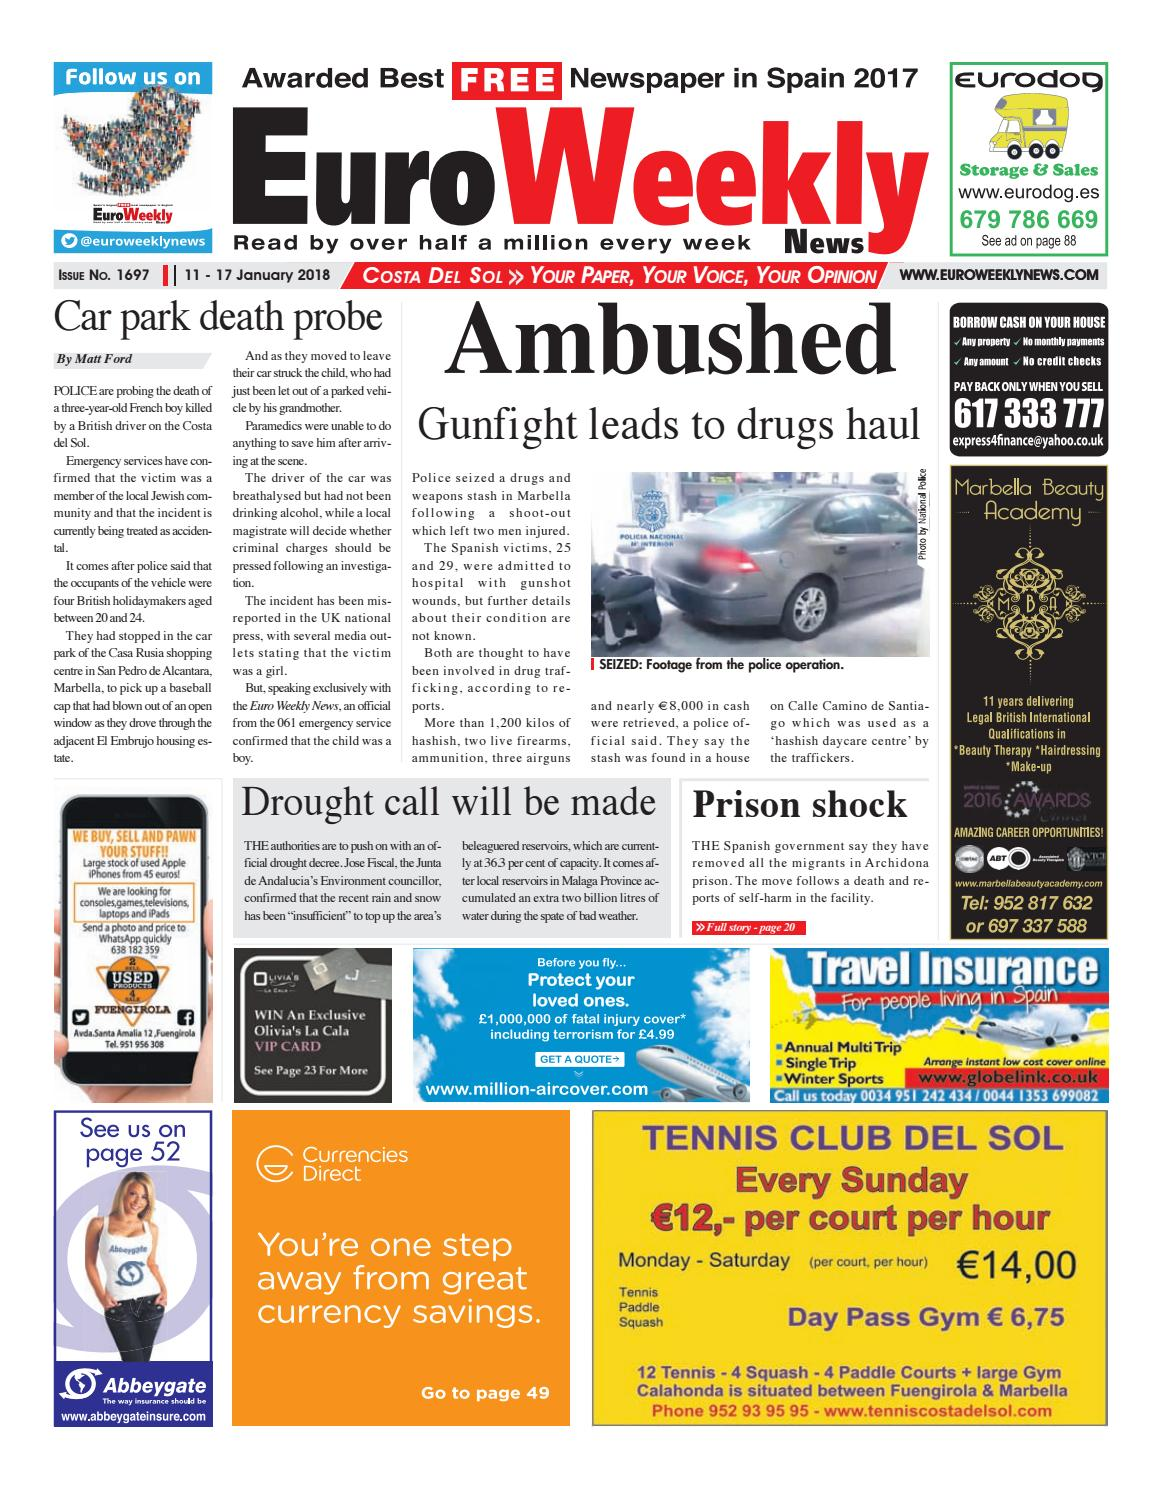 Euro Weekly News Costa Del Sol 11 17 Jan 2018 Issue 1697 By  # Muebles Lira Gold